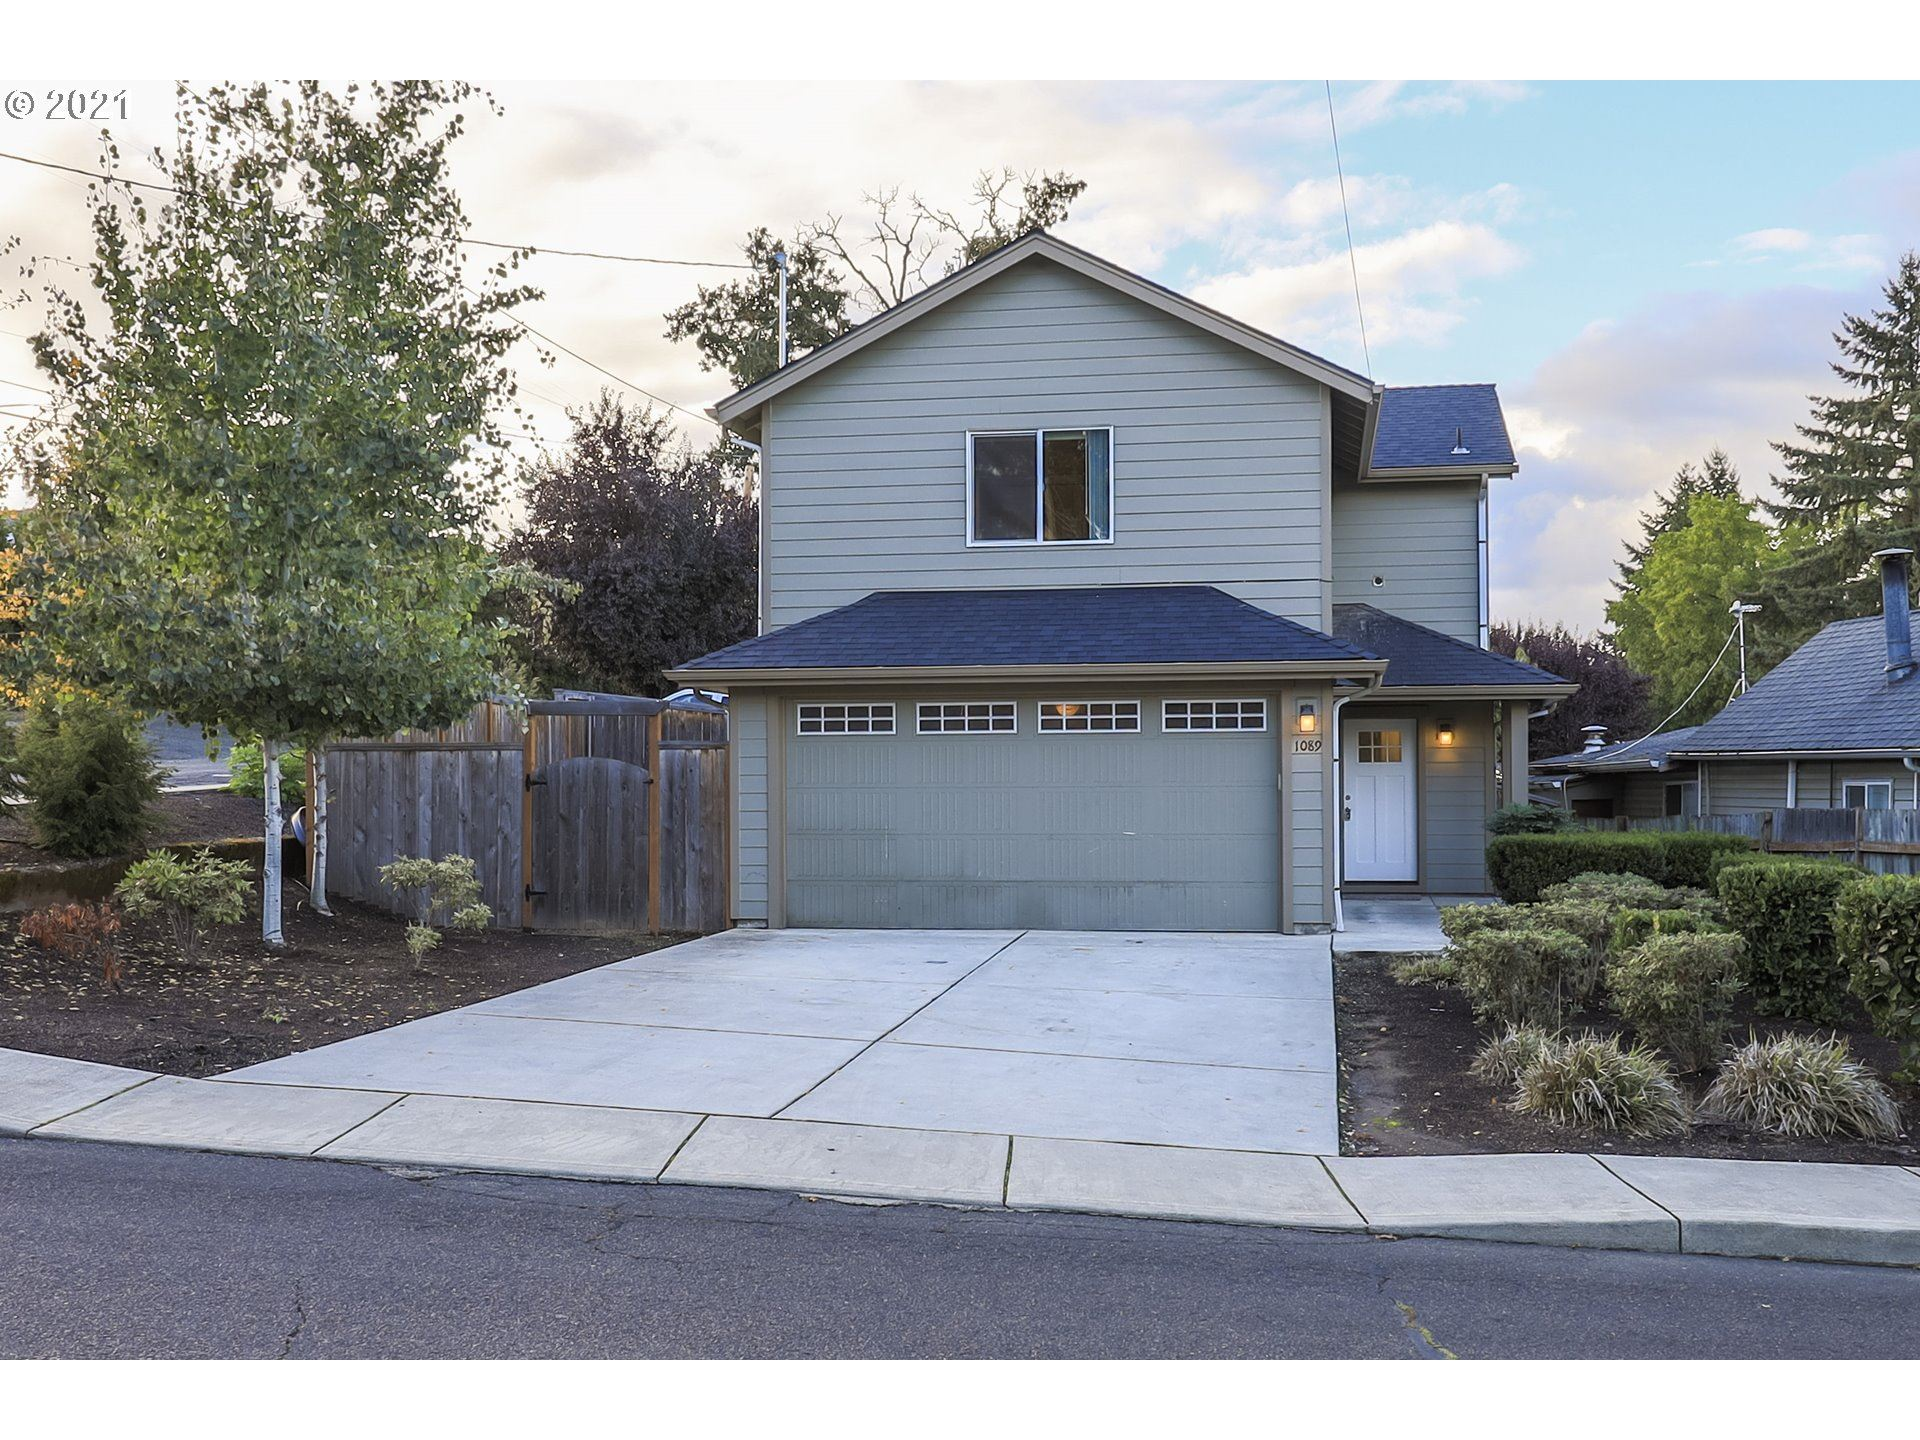 Photo of 720 SW CLAY ST DALLAS OR 97 AVE, Dallas, OR 97338 (MLS # 21670268)